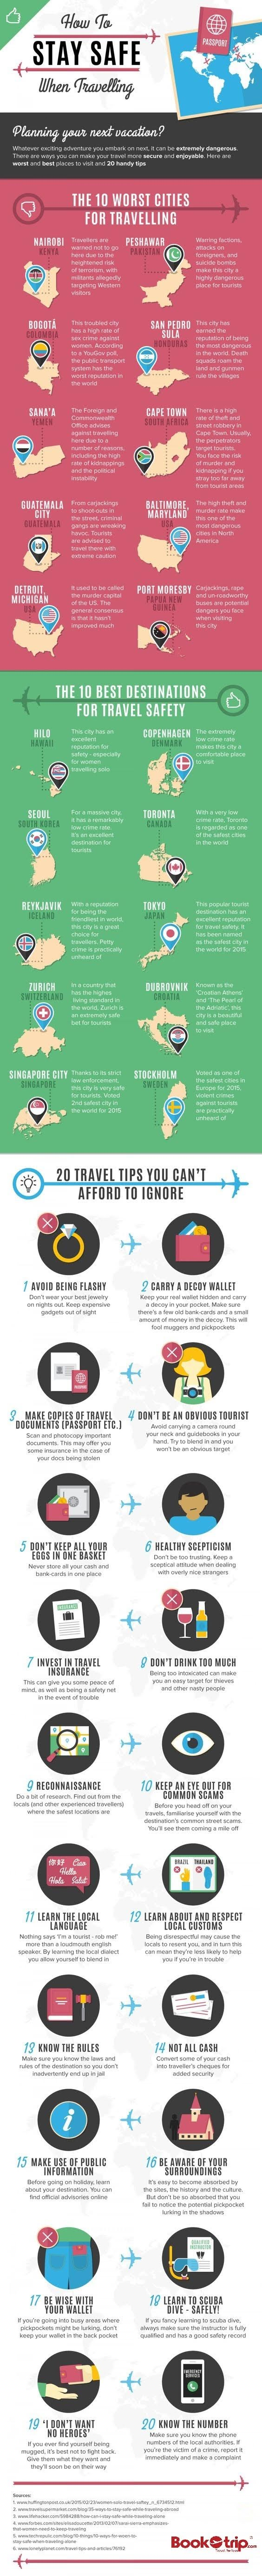 How to Stay Safe When Travelling #inforaphic